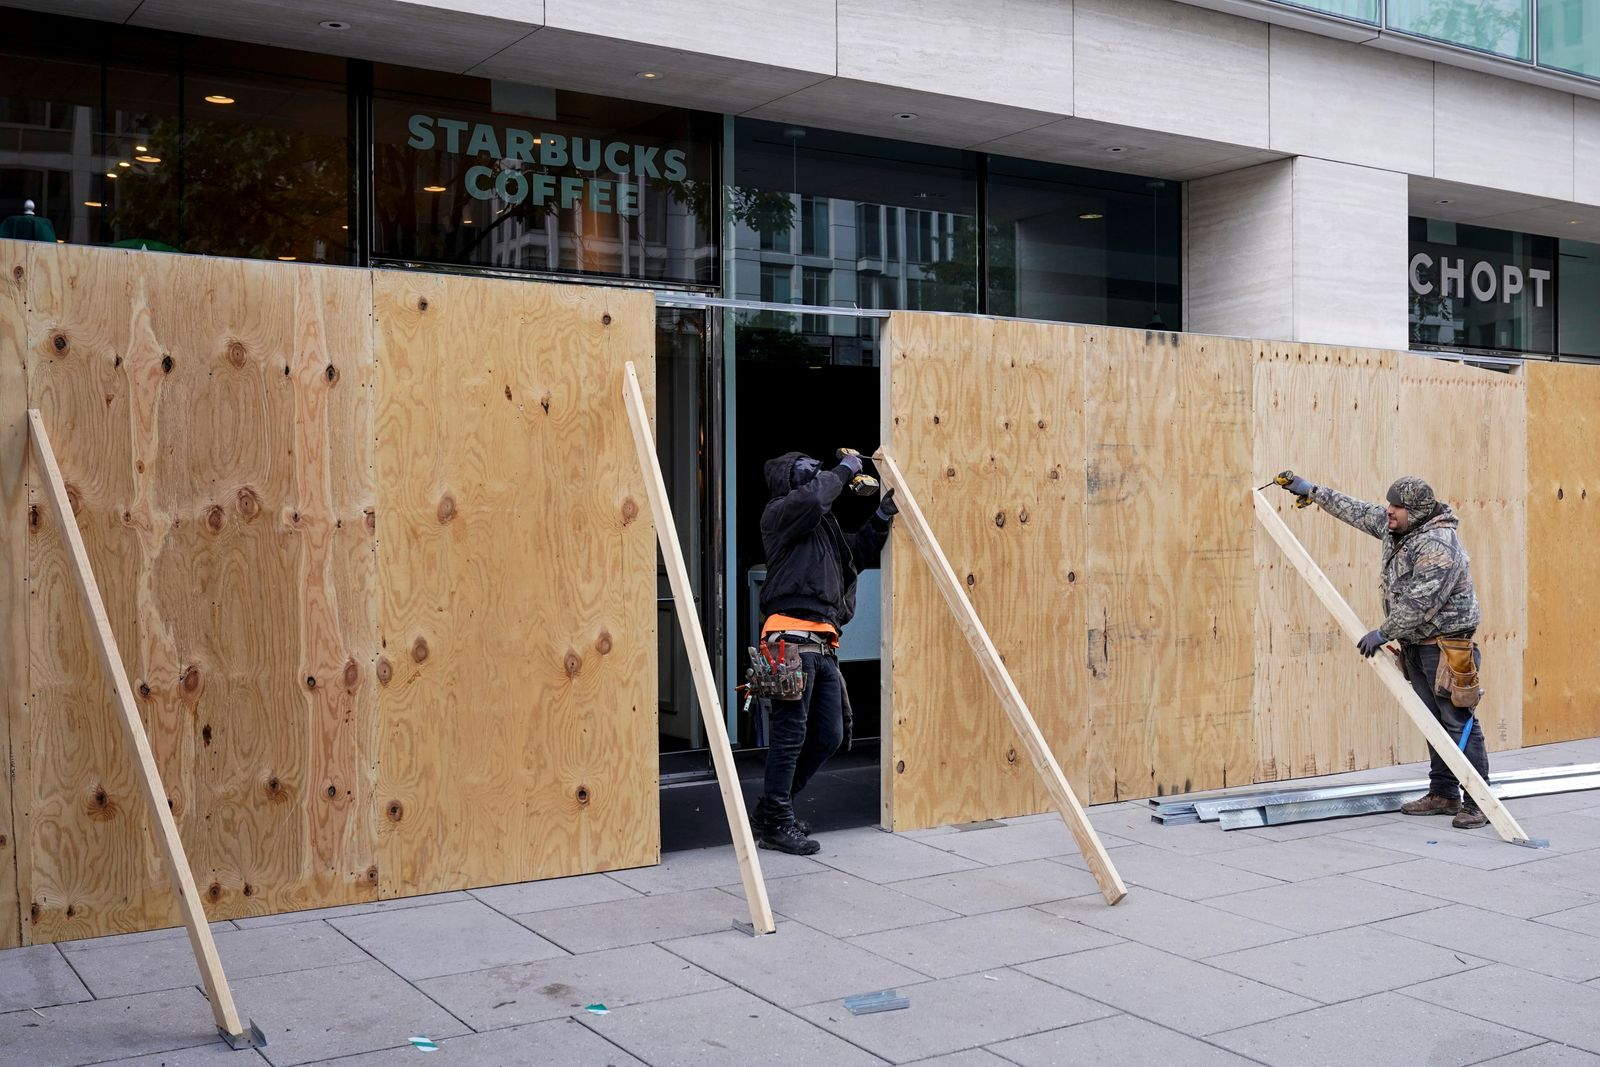 Workers place plywood over storefronts ahead of Election Day near the White House in Washington